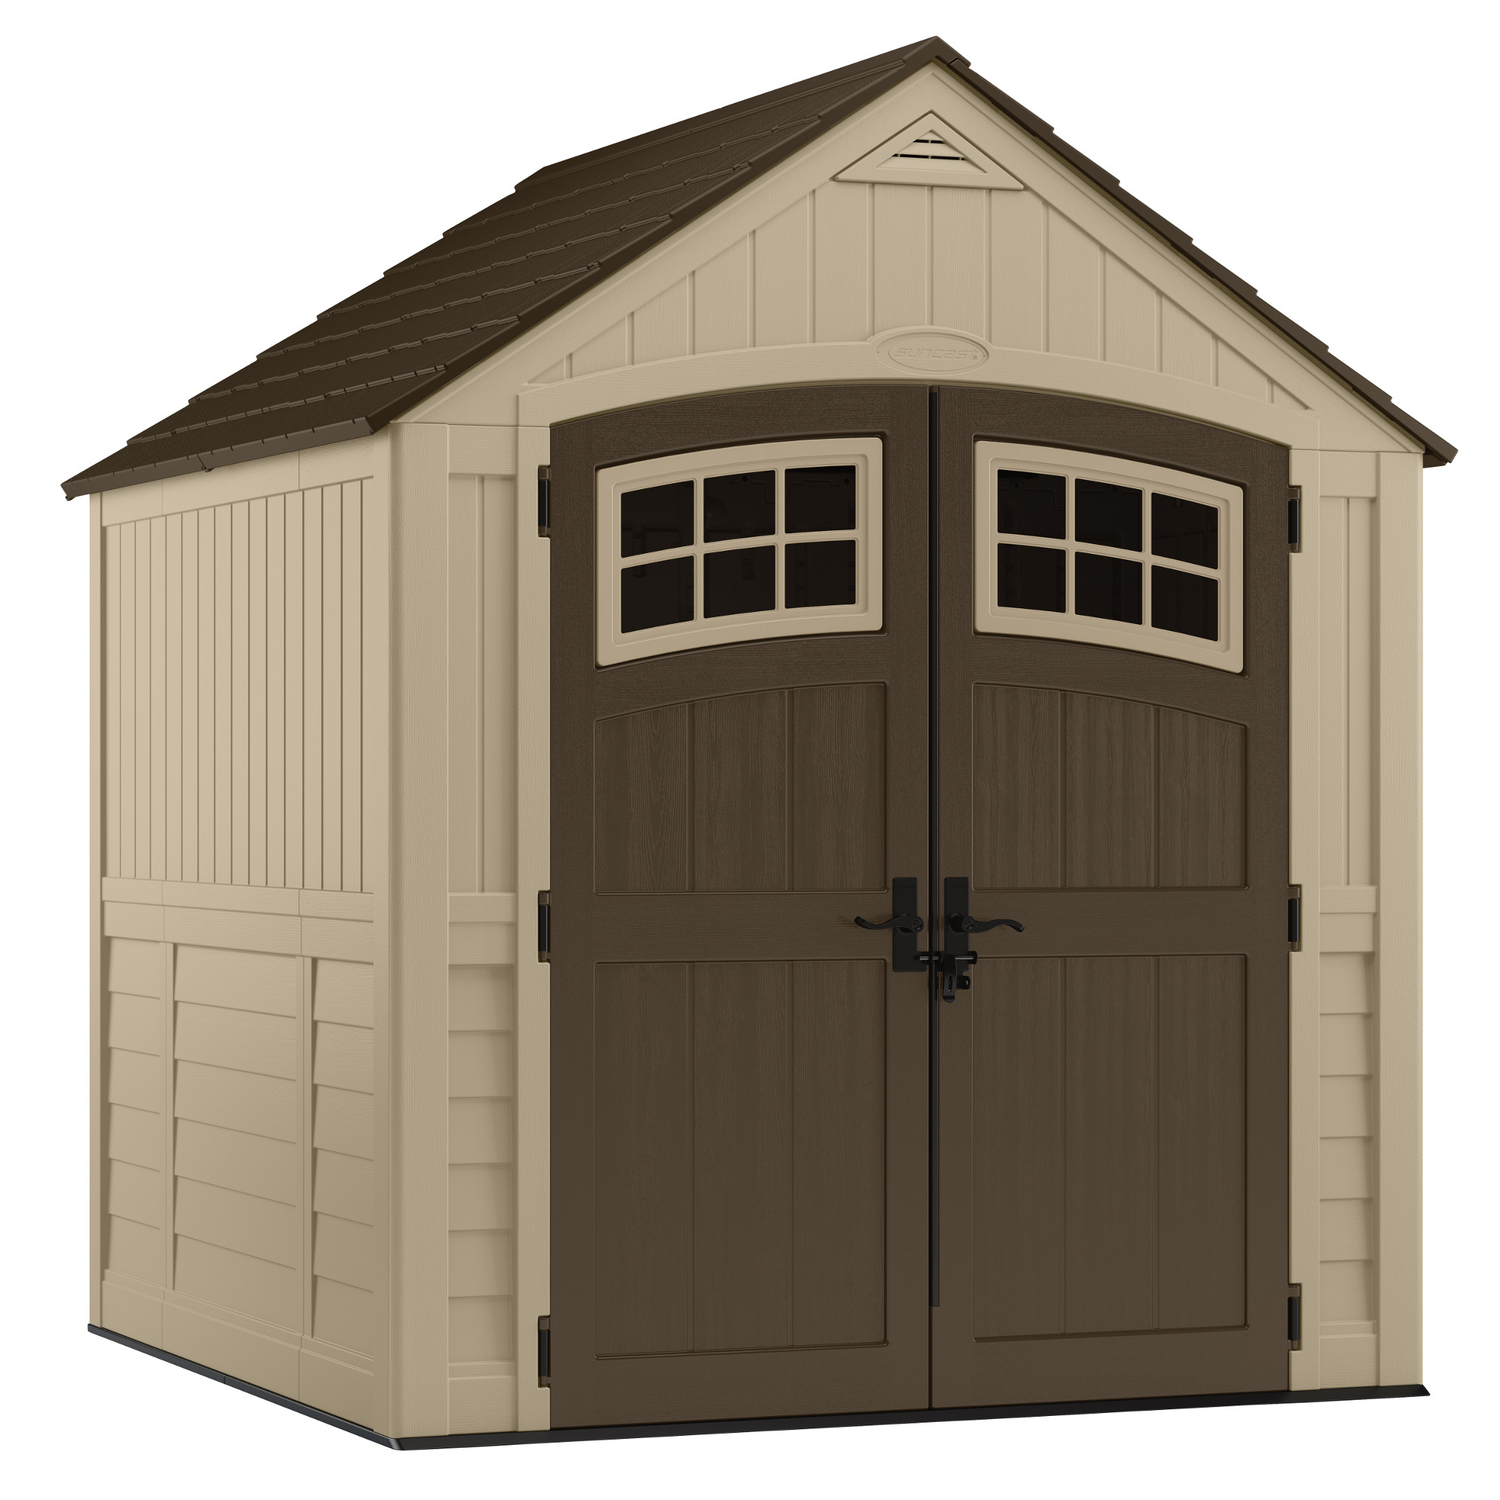 Sutton�7 ft. x 7 ft. Storage Shed